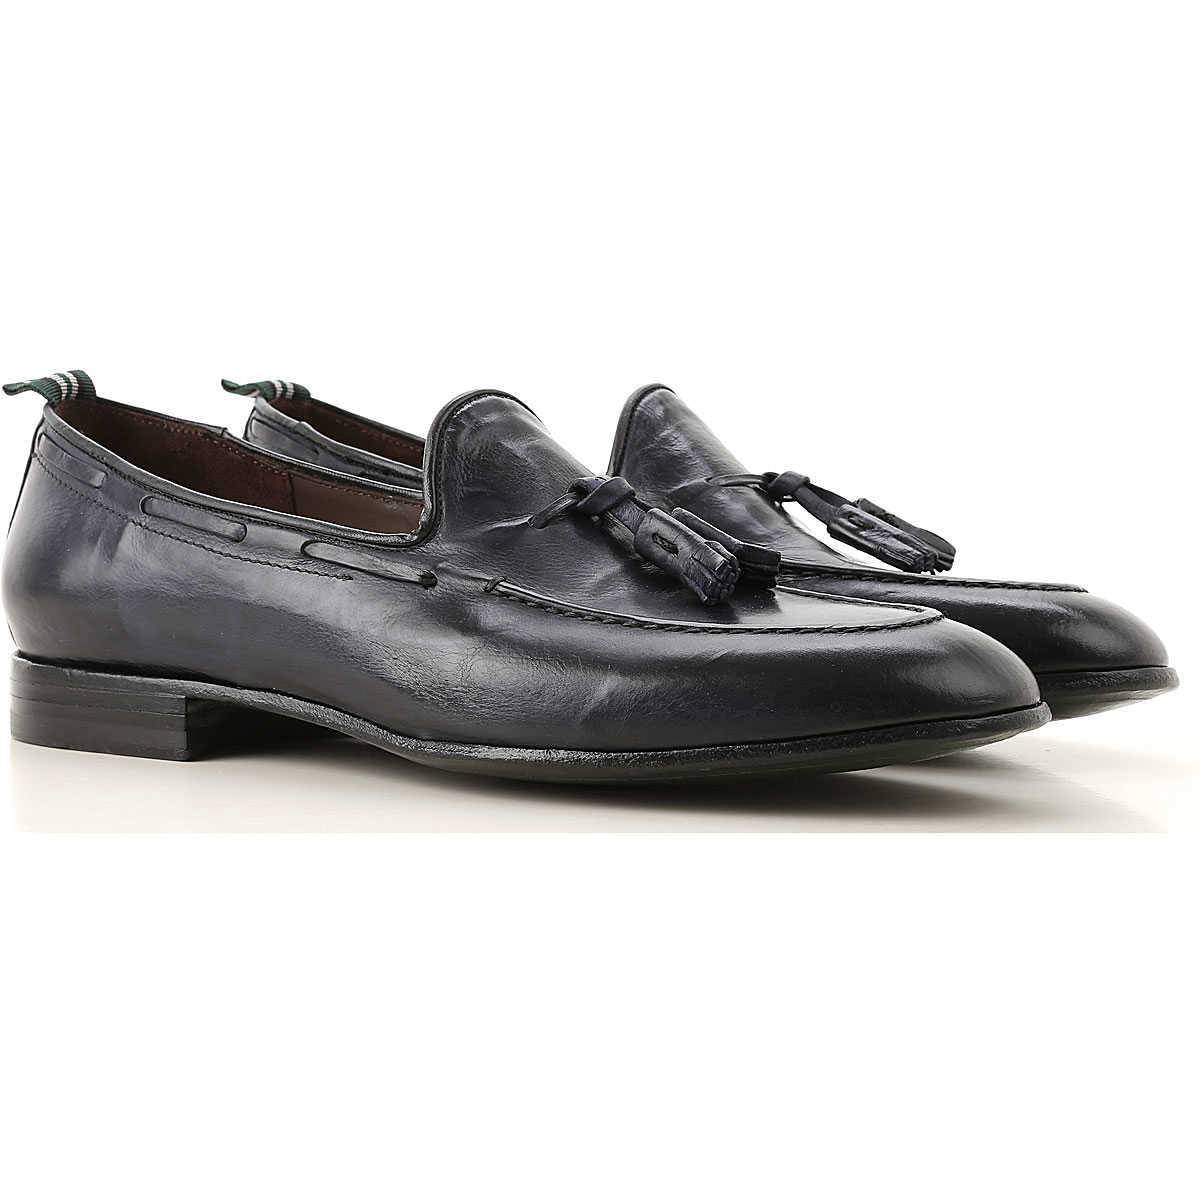 Green George Loafers for Men On Sale Dark Navy Blue - GOOFASH